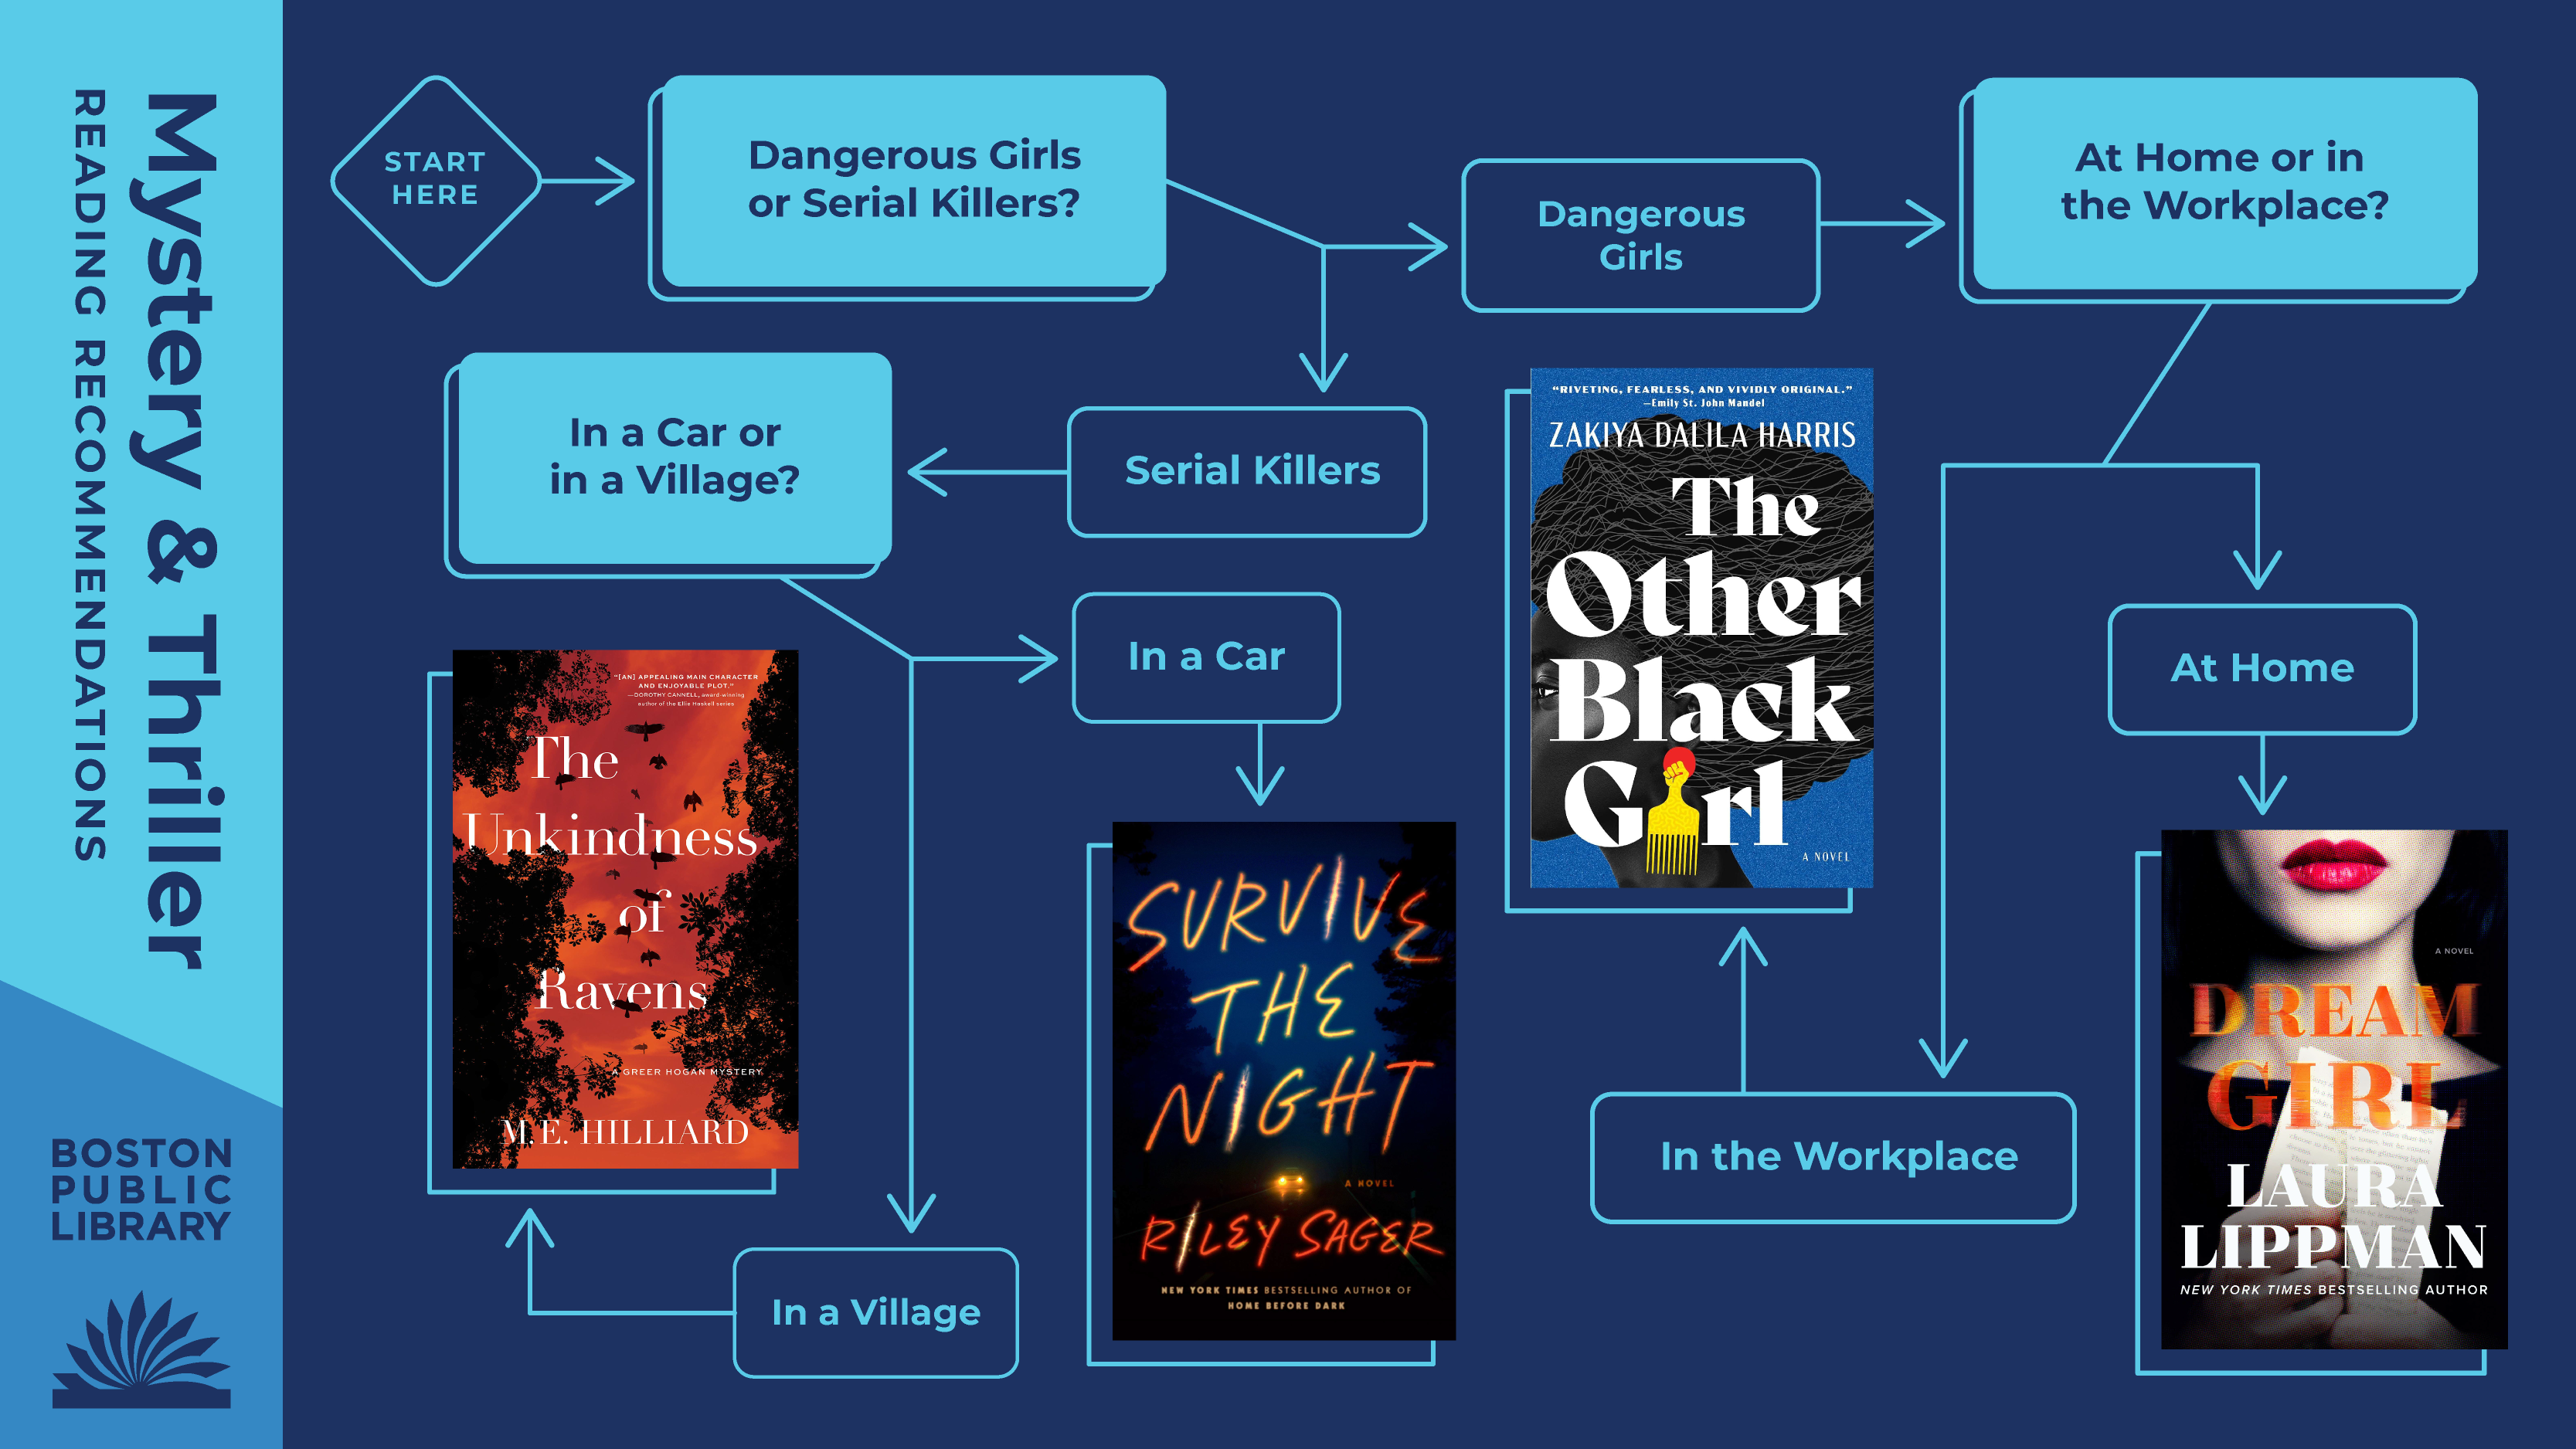 Mystery & Thriller Reading Recommendations | Dangerous Girls or Serial Killers? Dangerous Girls —> At Home (Dream Girl by Laura Lippman) or in the Workplace (The Other Black Girl by Zakiya Dalila Harris)? Serial Killers —> In a car (Survive the Night by Riley Sager) or in a Village (The Unkindness of Ravens by M.E. Hilliard)?